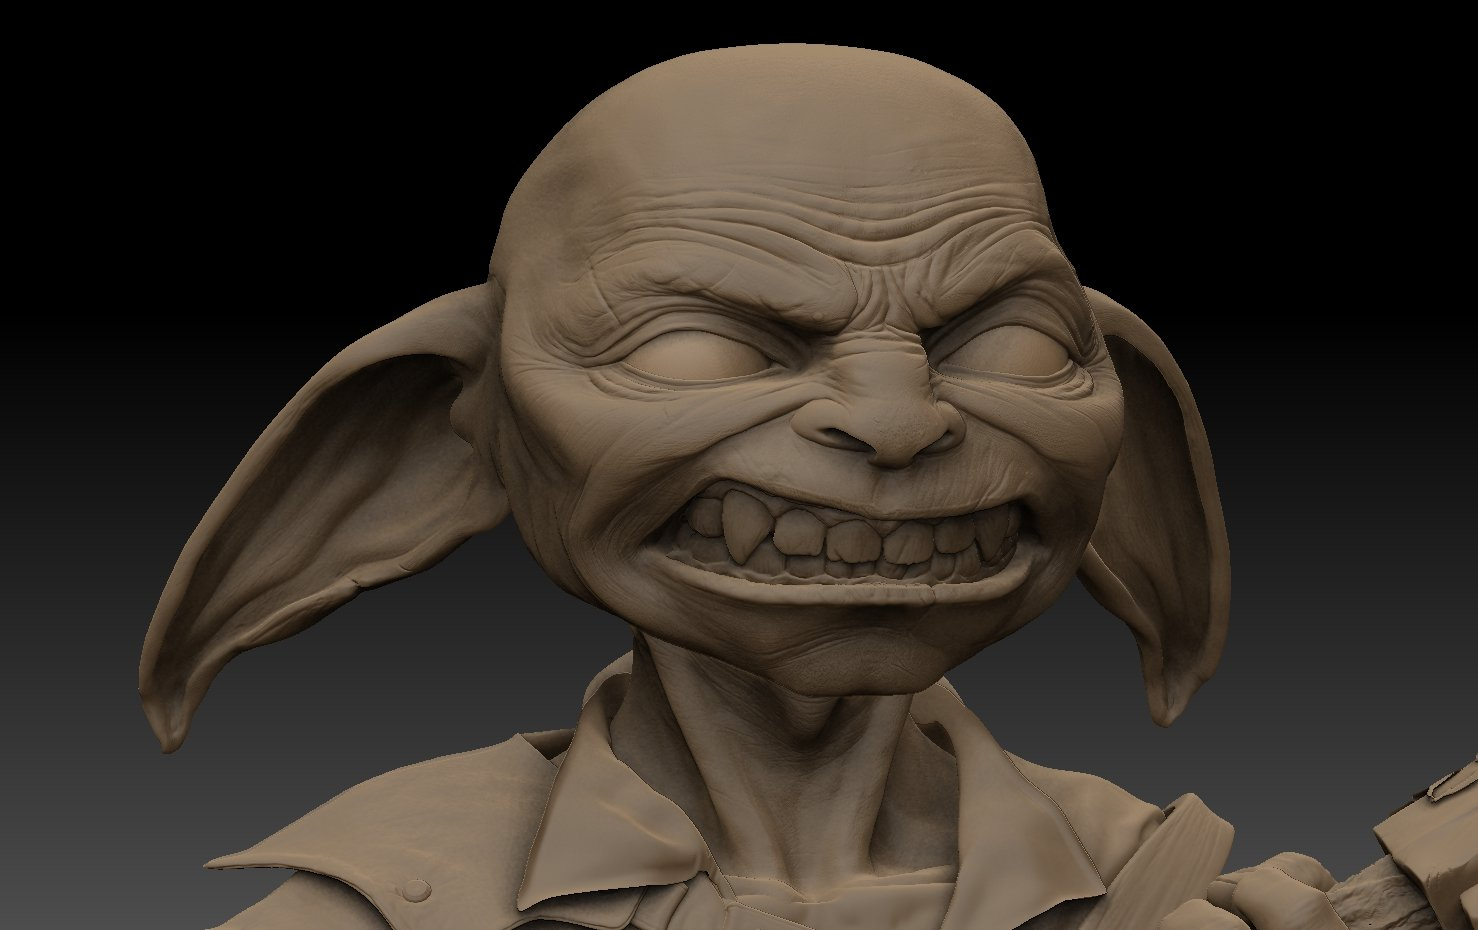 Anthony guebels zbrush screengrab02